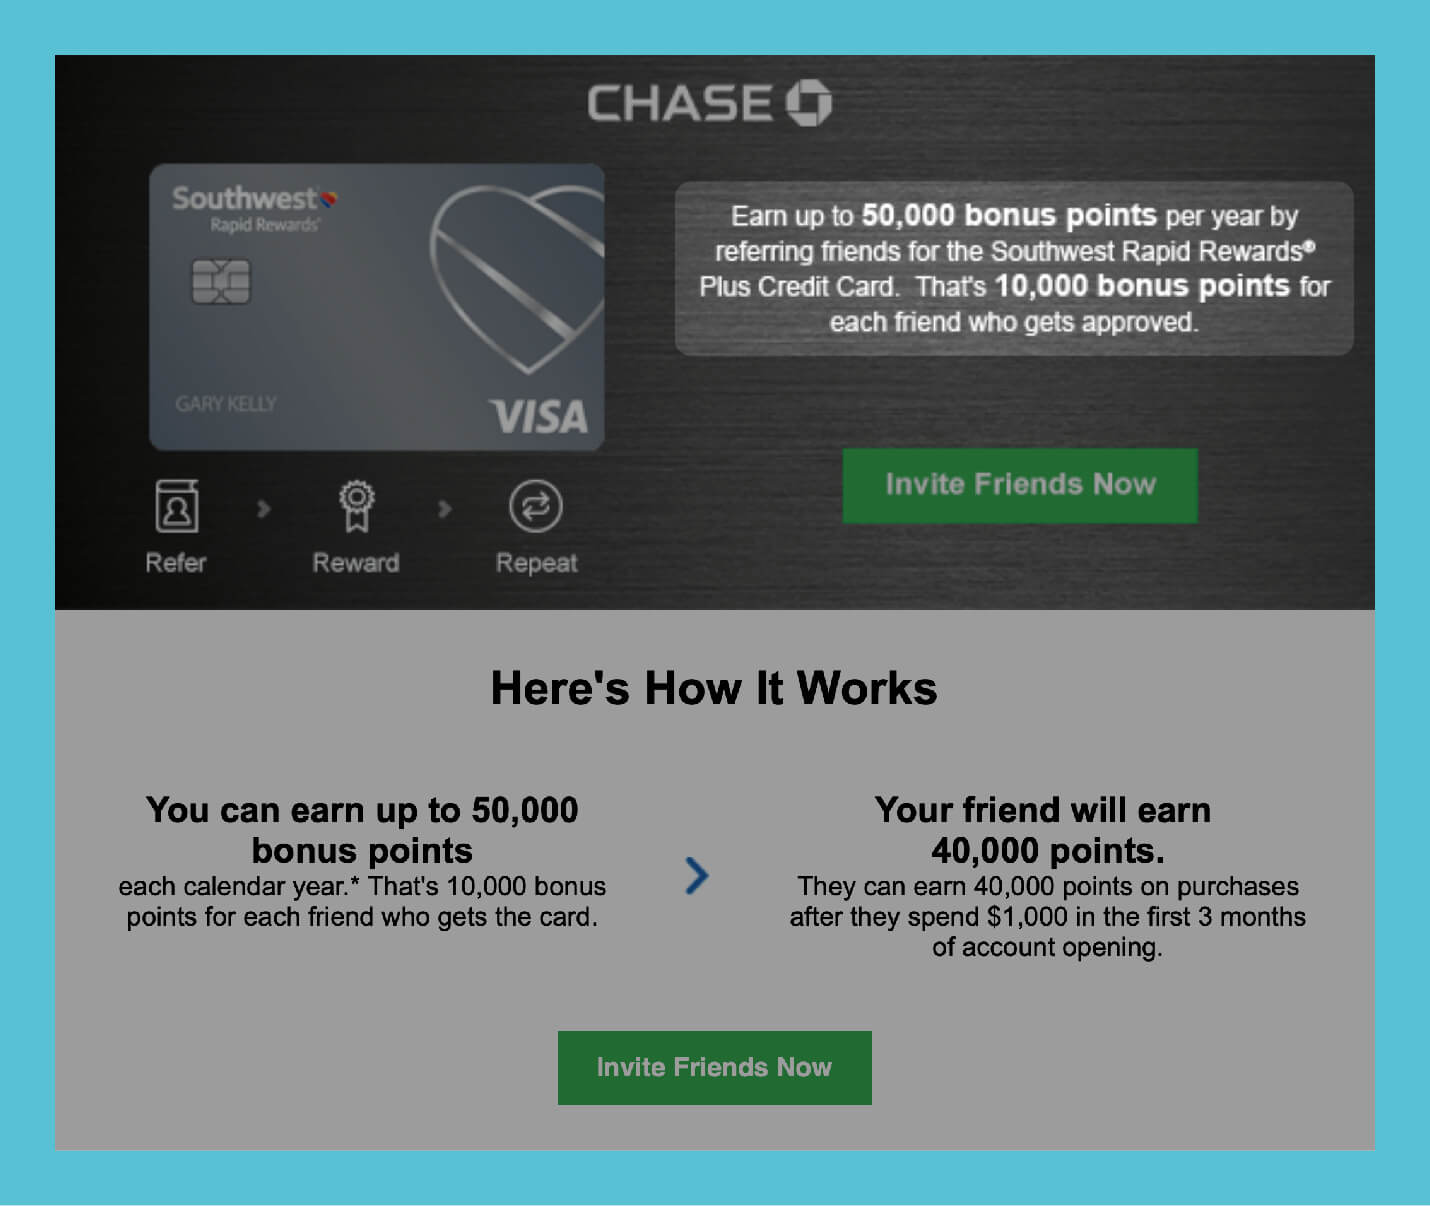 referral email from chase offering large valuable prize for referrals